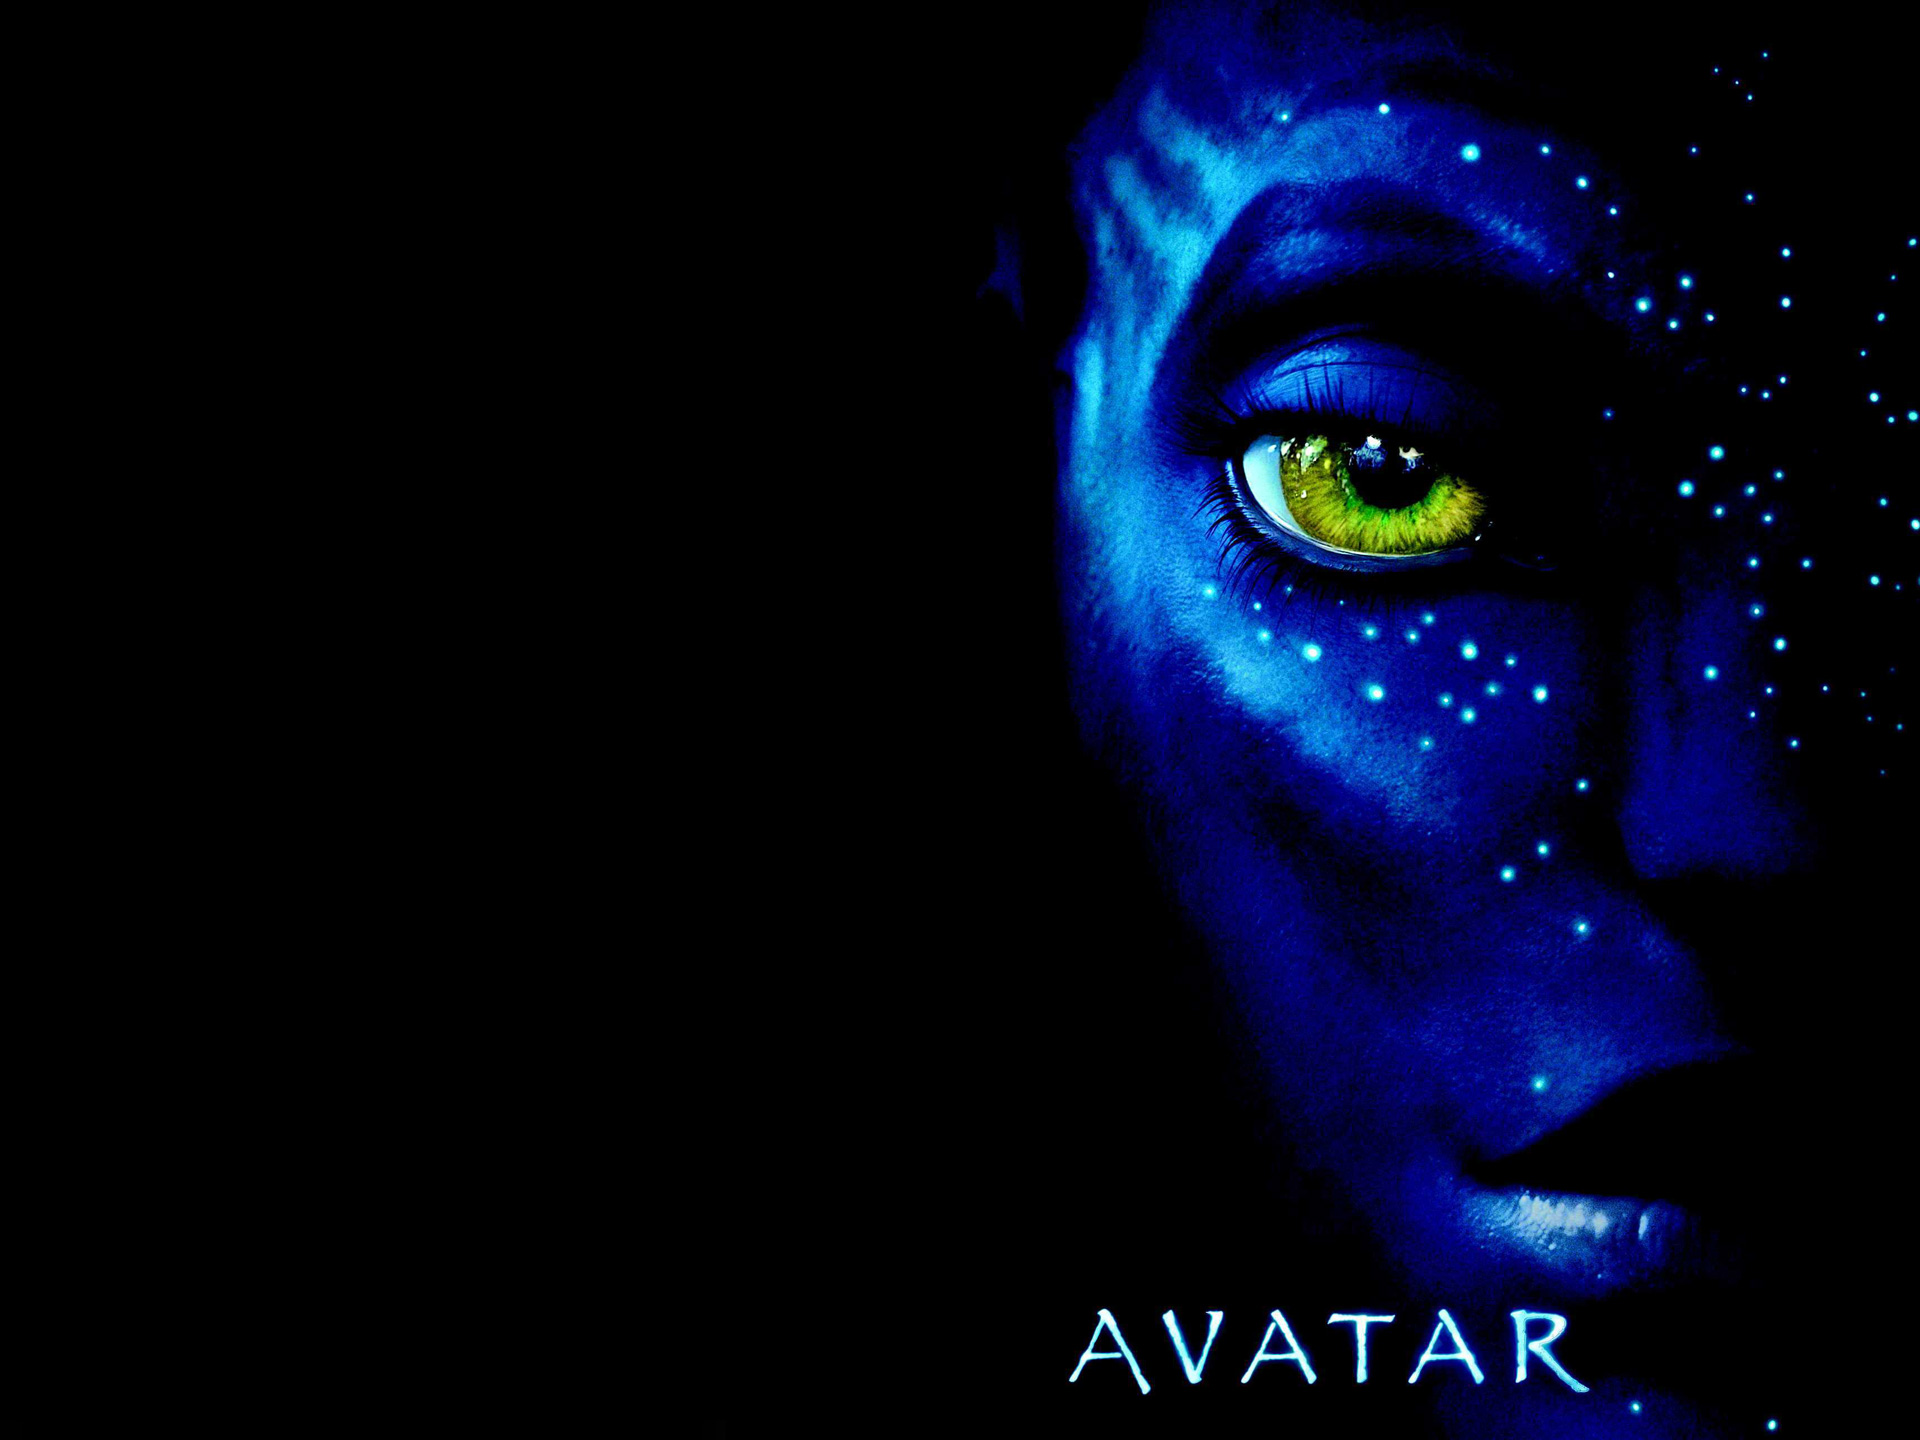 Official Avatar Movie Poster